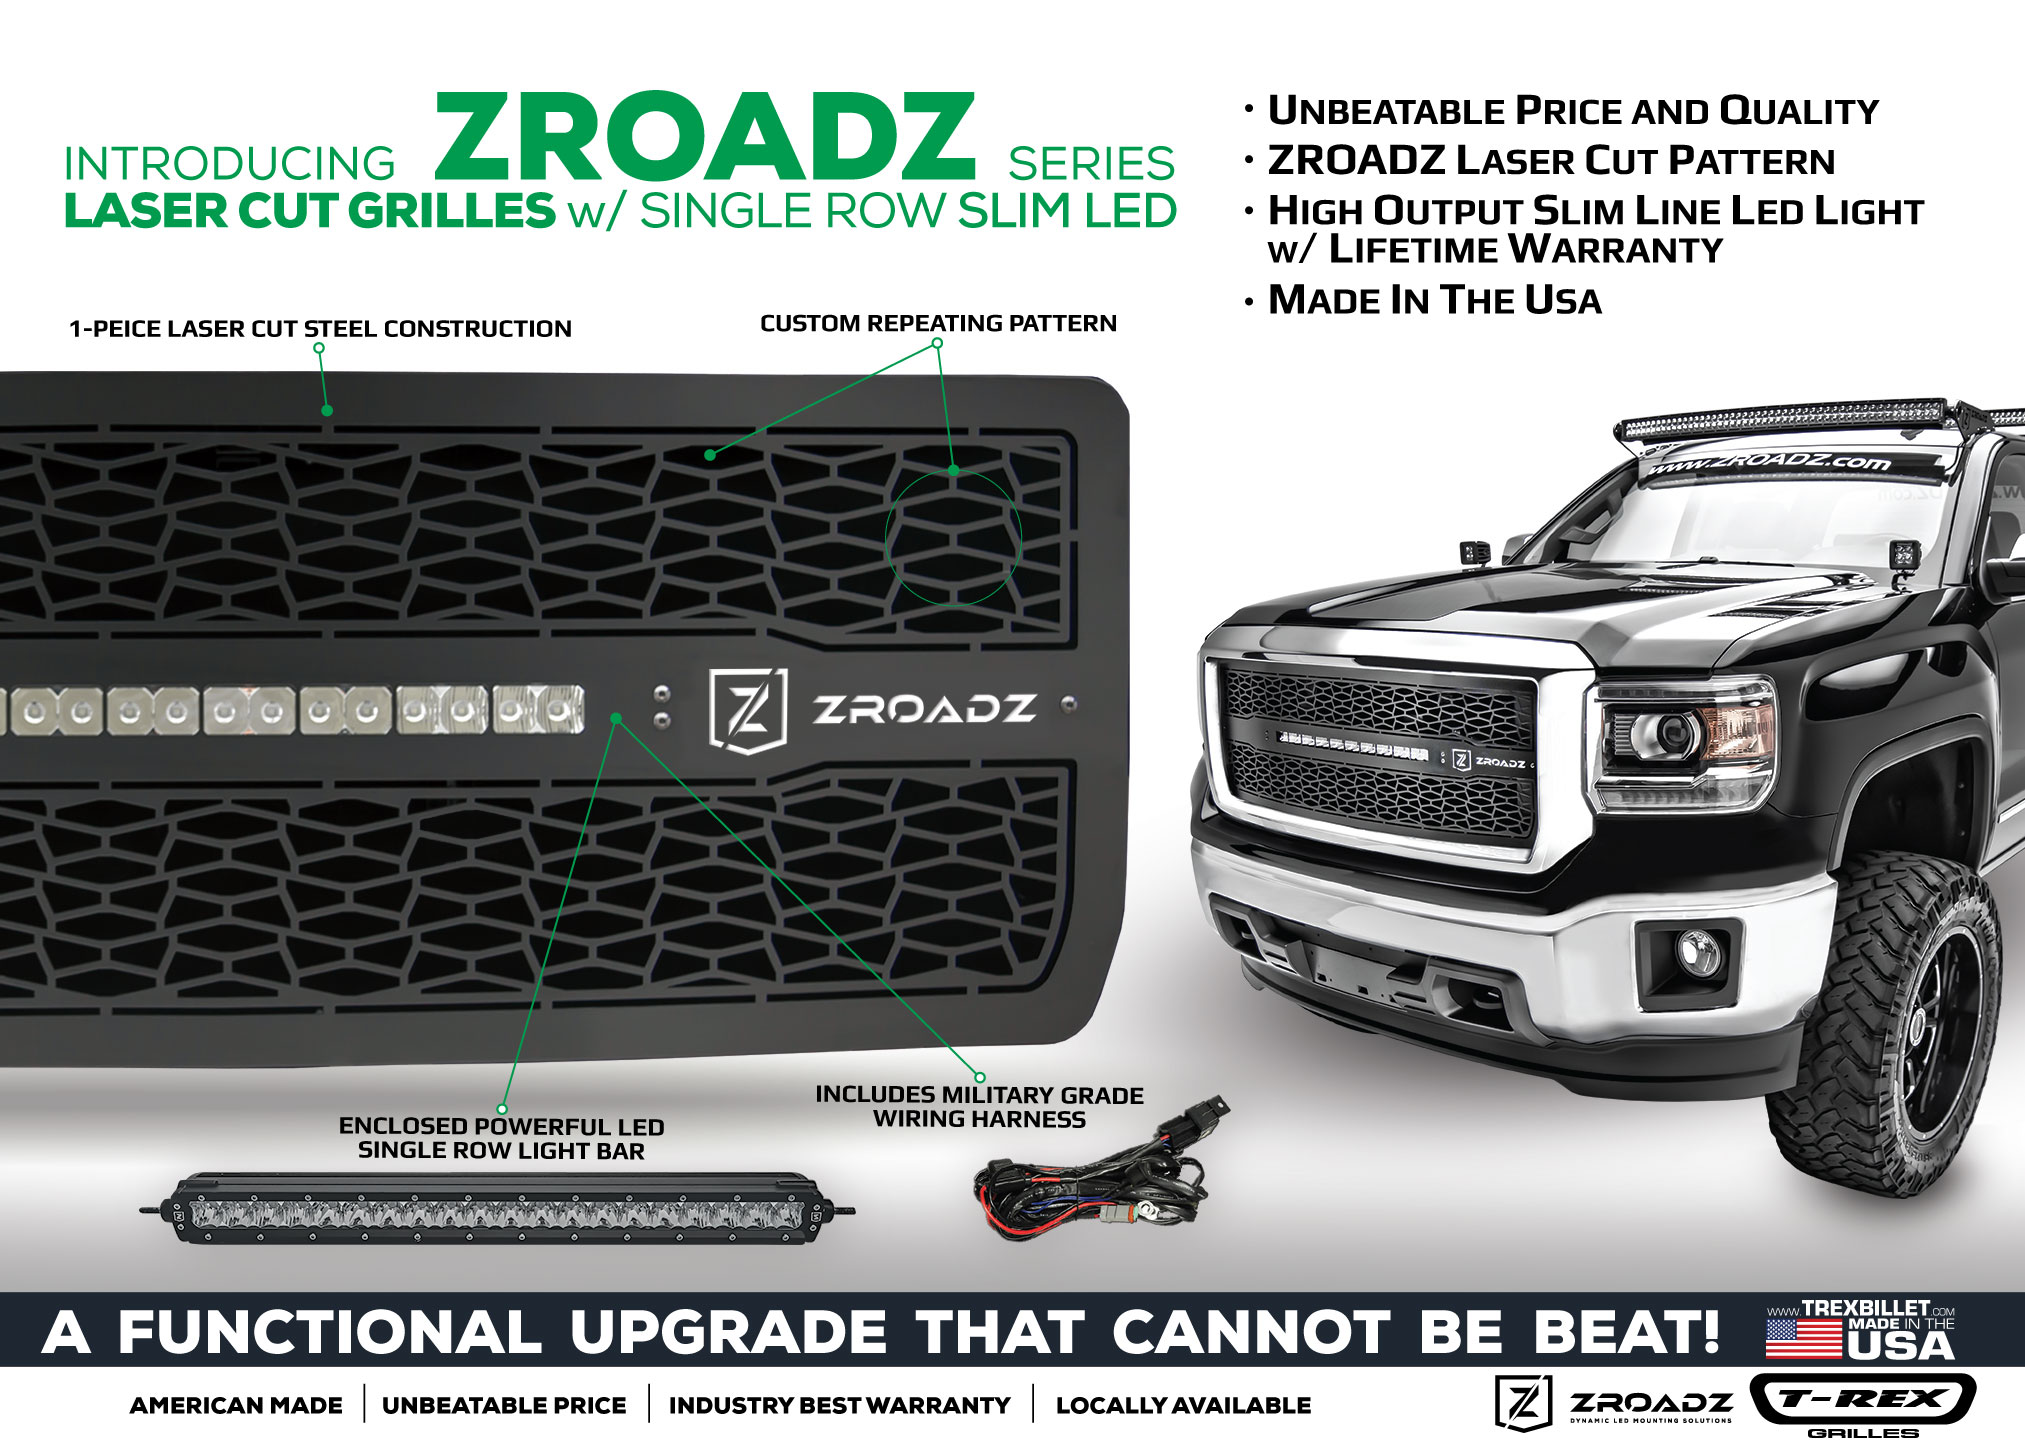 Zroadz series led light grille collection led light bar and inspired by off road rugged styling the main objective was to offer a full package grille made in the usa and at an unbeatable aloadofball Image collections